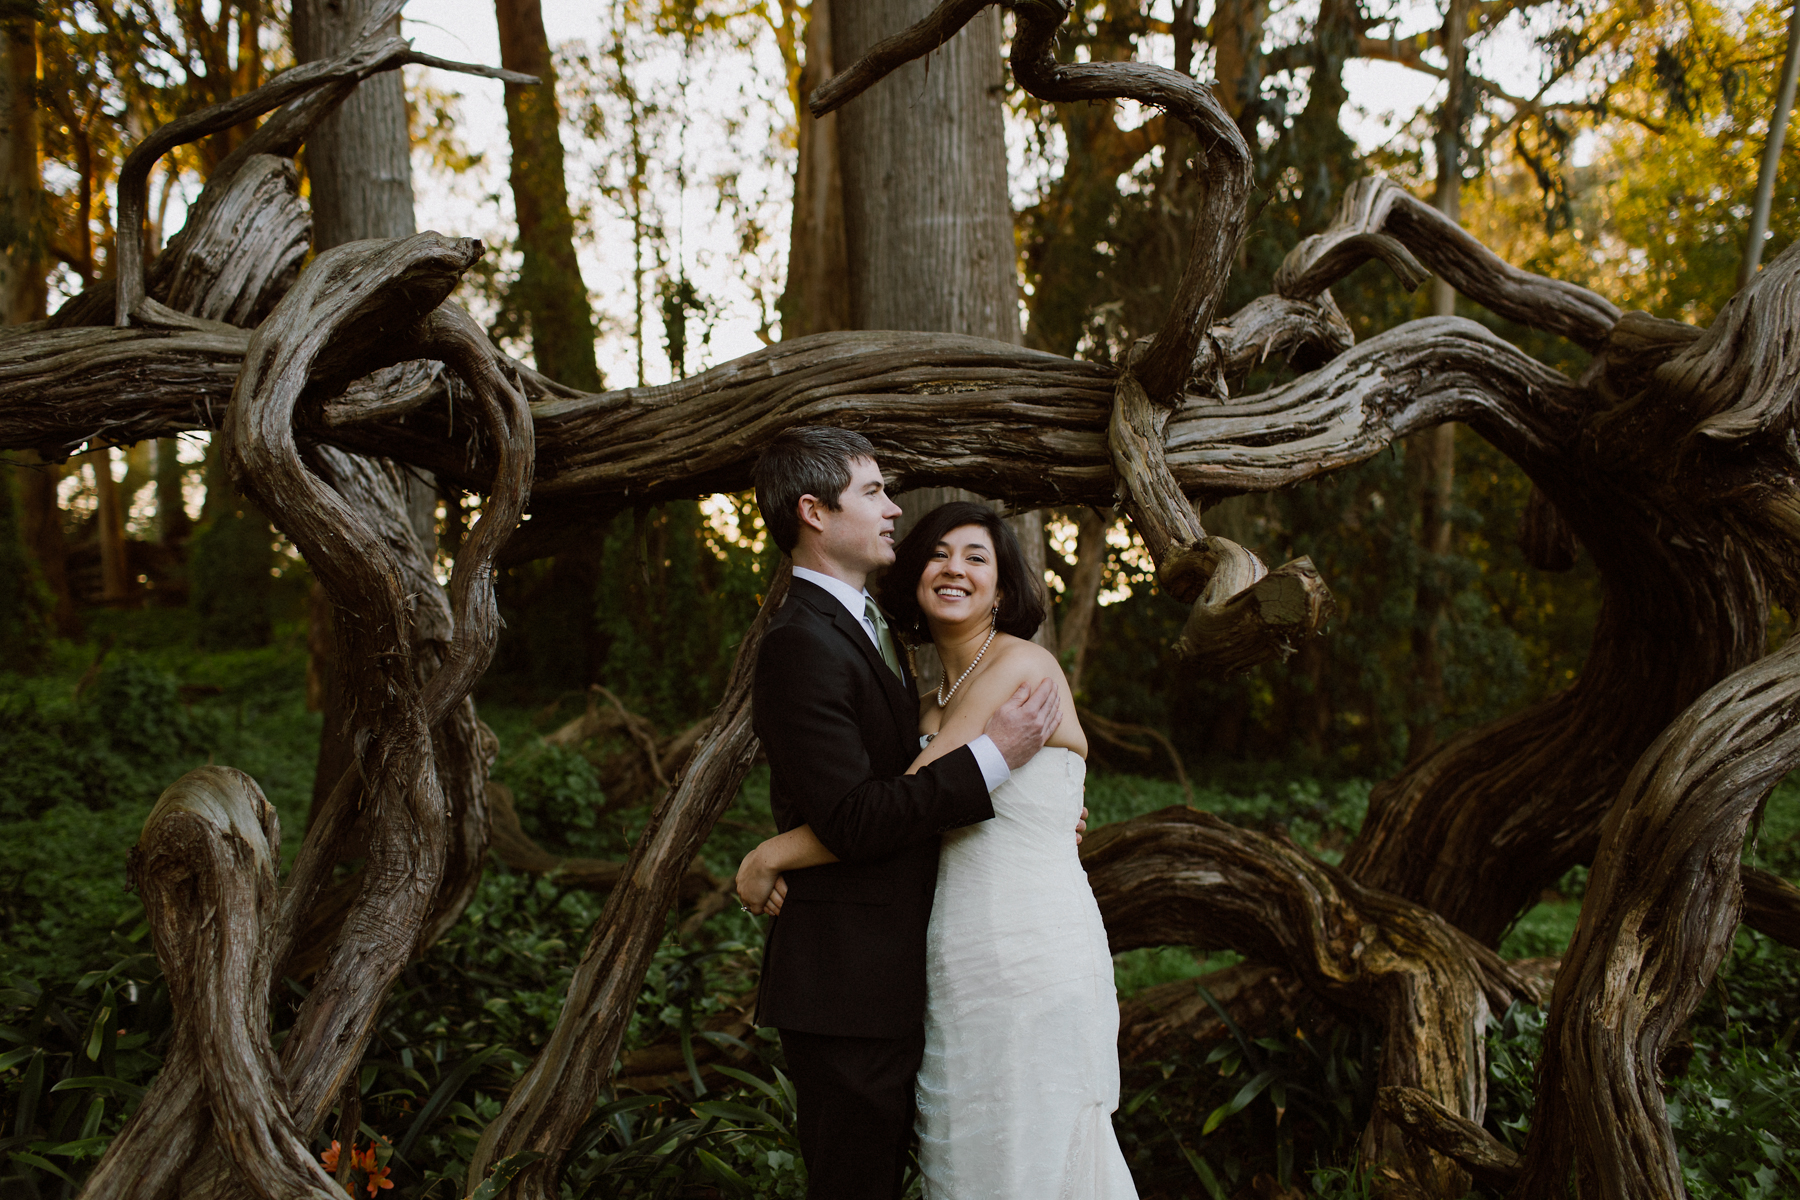 Golden Gate Park wedding portraits.